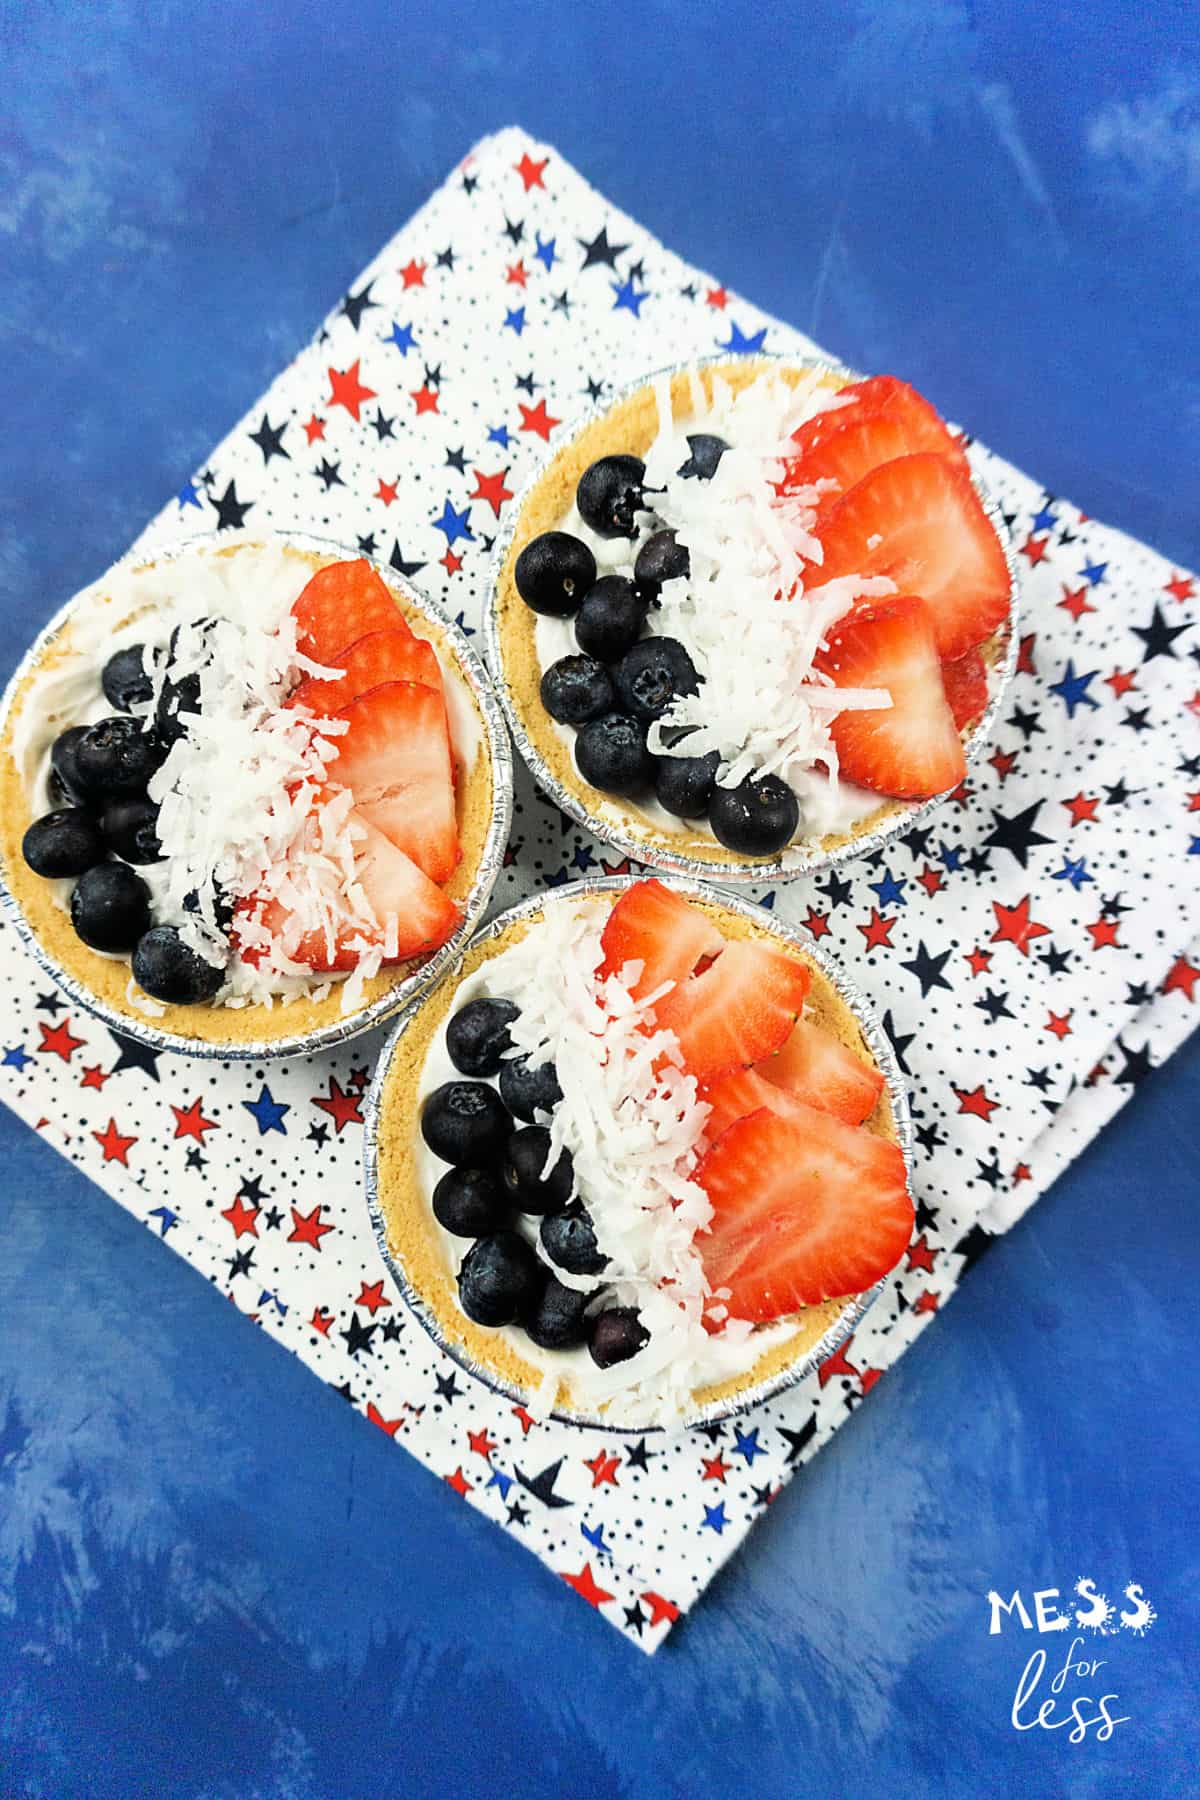 blueberry and strawberry mini cream pies on a star background